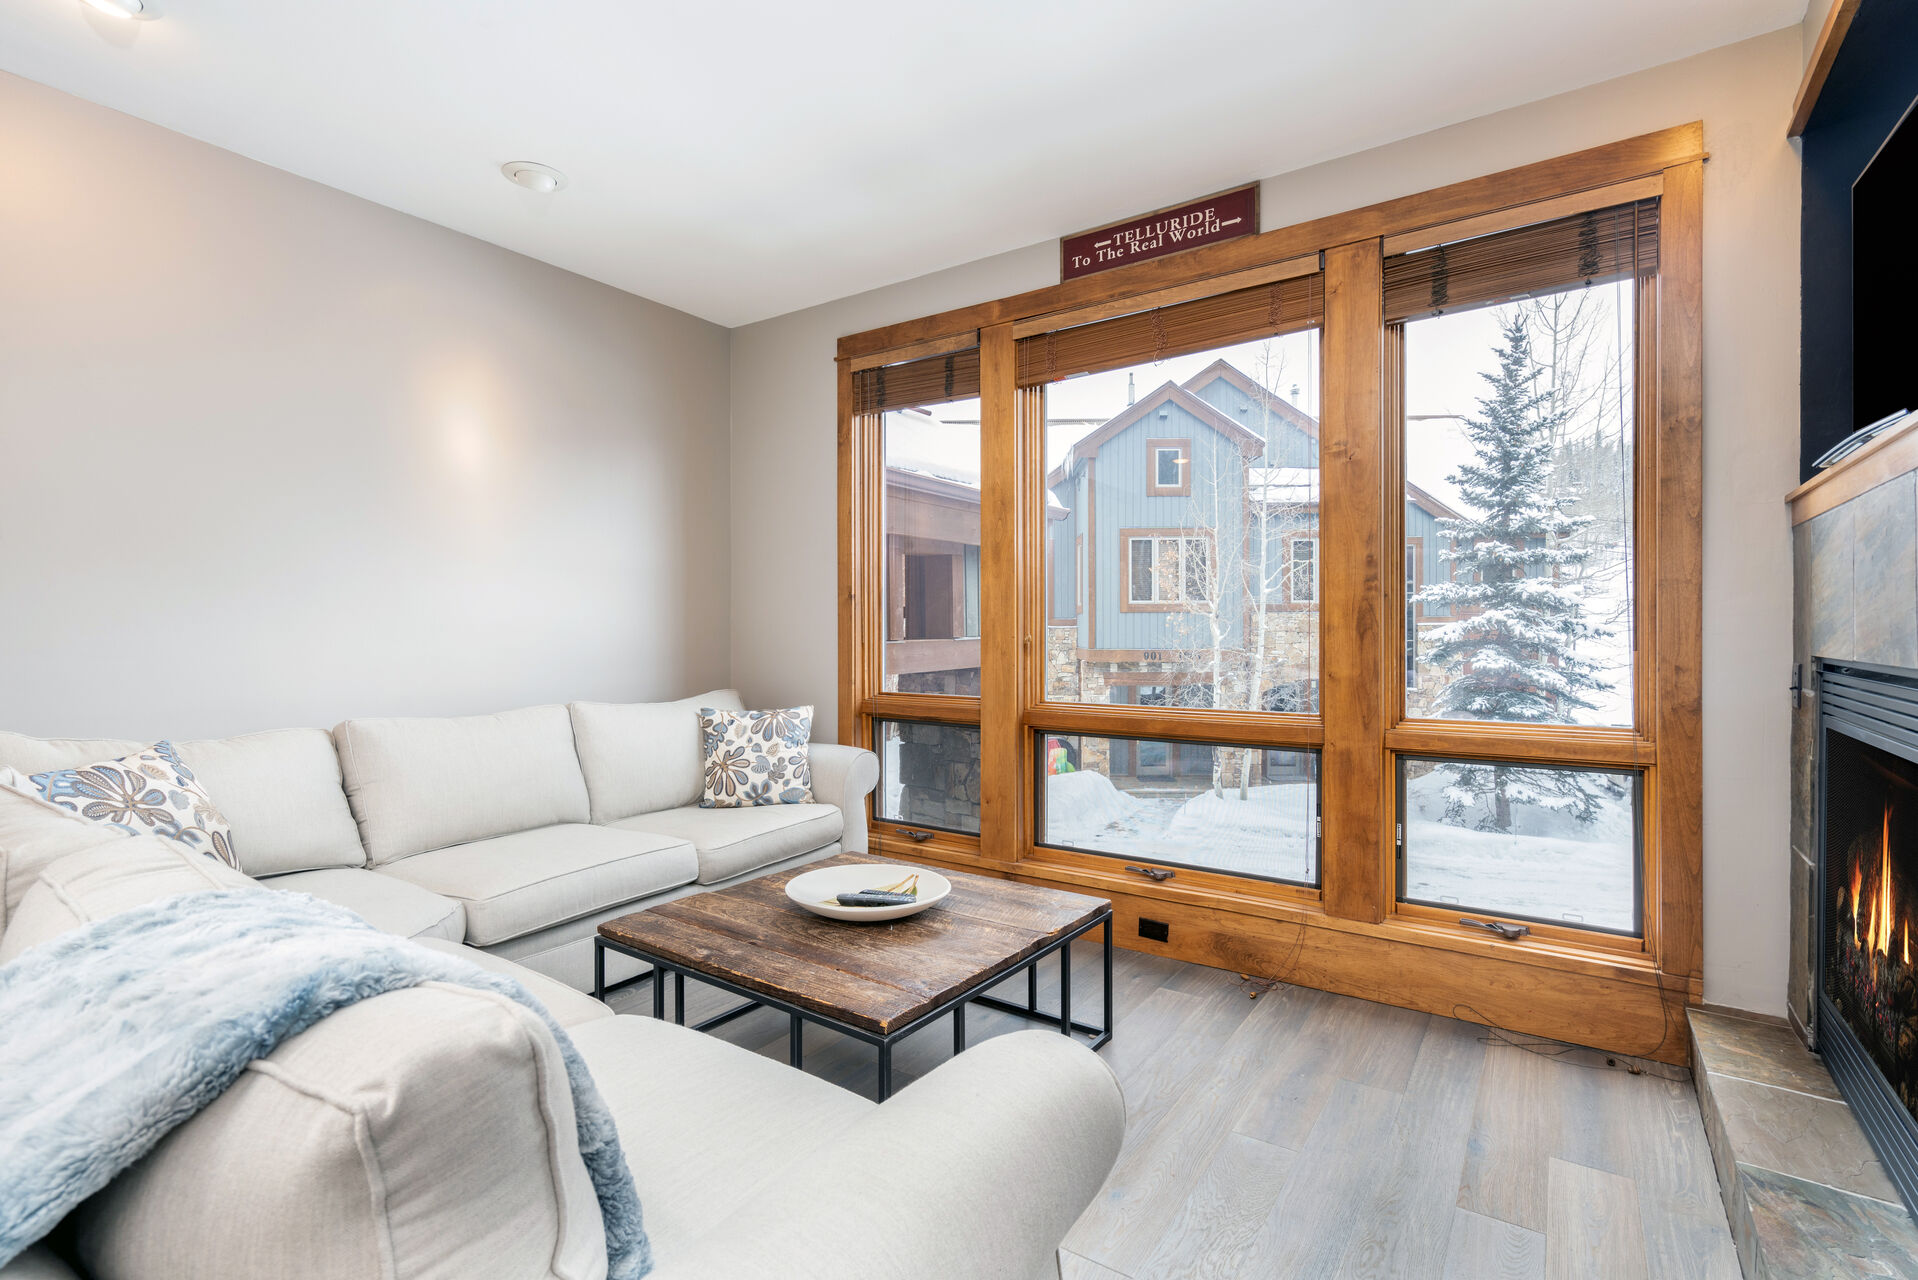 Living room with wood-framed window and snowy background